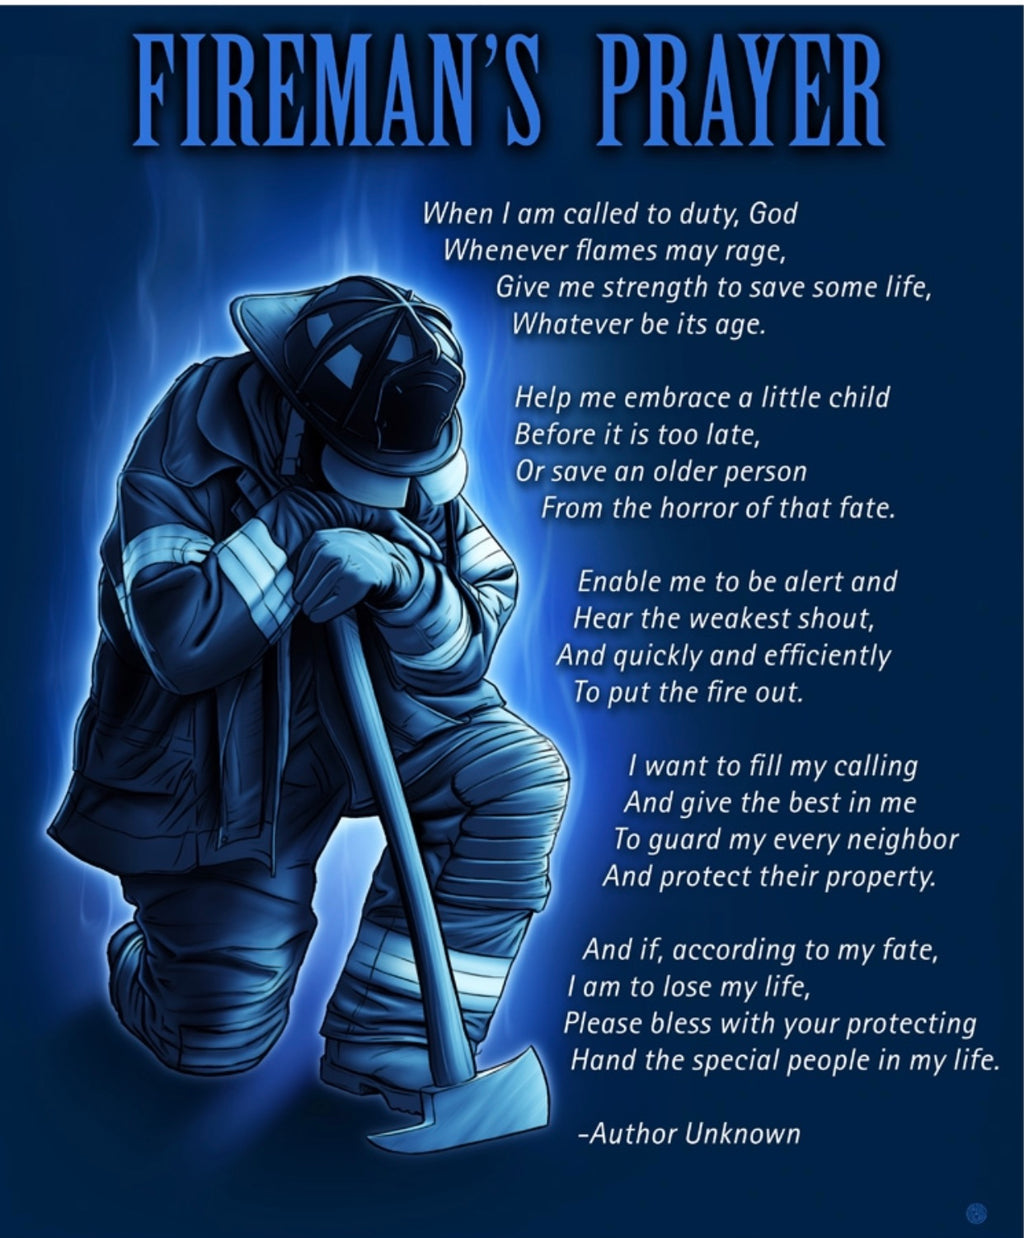 Firemans Prayer 60 X 50 Fleece Blanket - The Wall Kids, Inc.